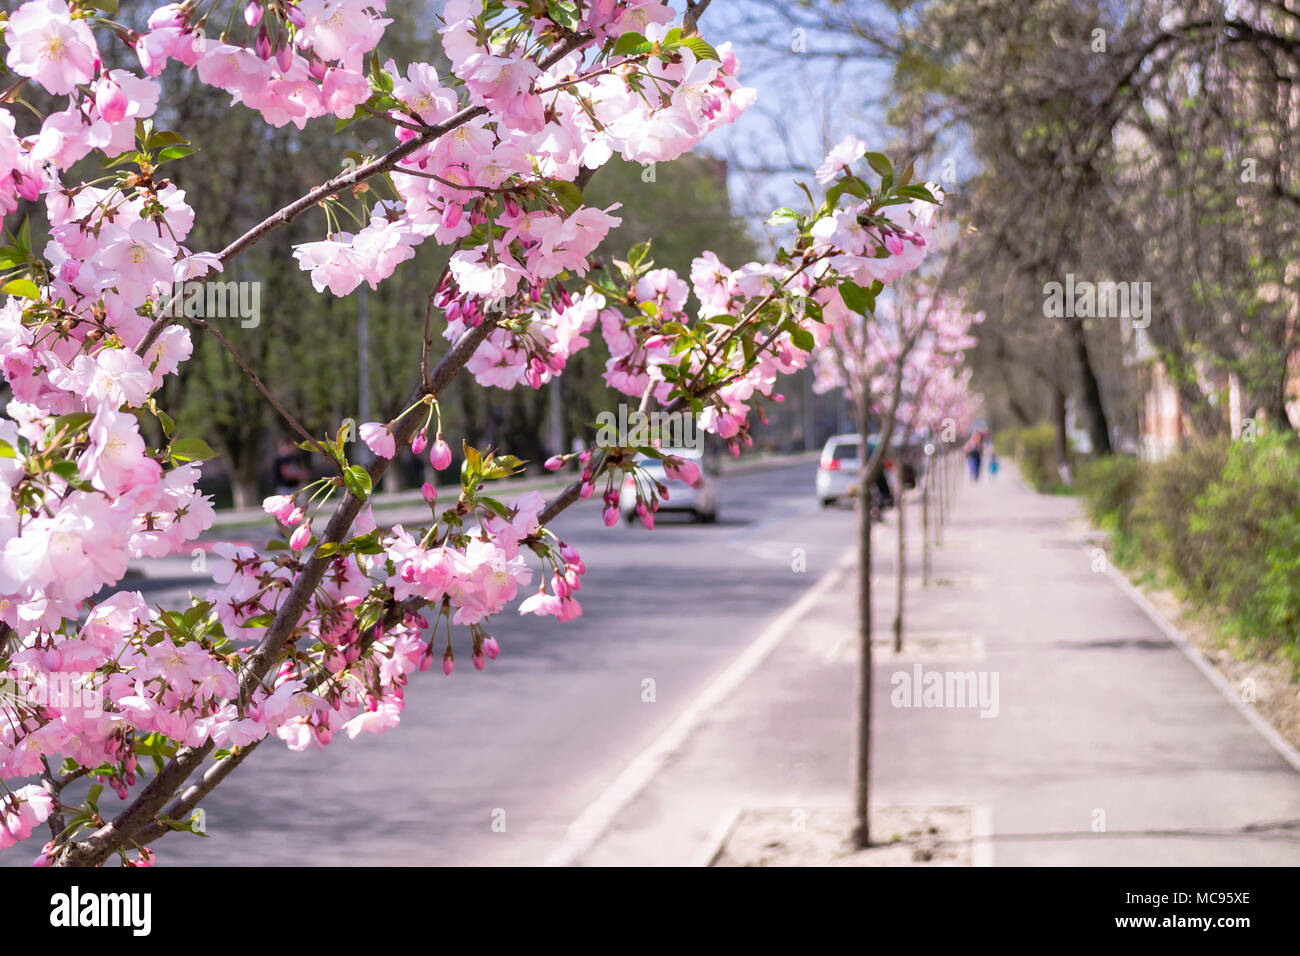 Pink sakura flowers closeup on blurred street background stock photo pink sakura flowers closeup on blurred street background mightylinksfo